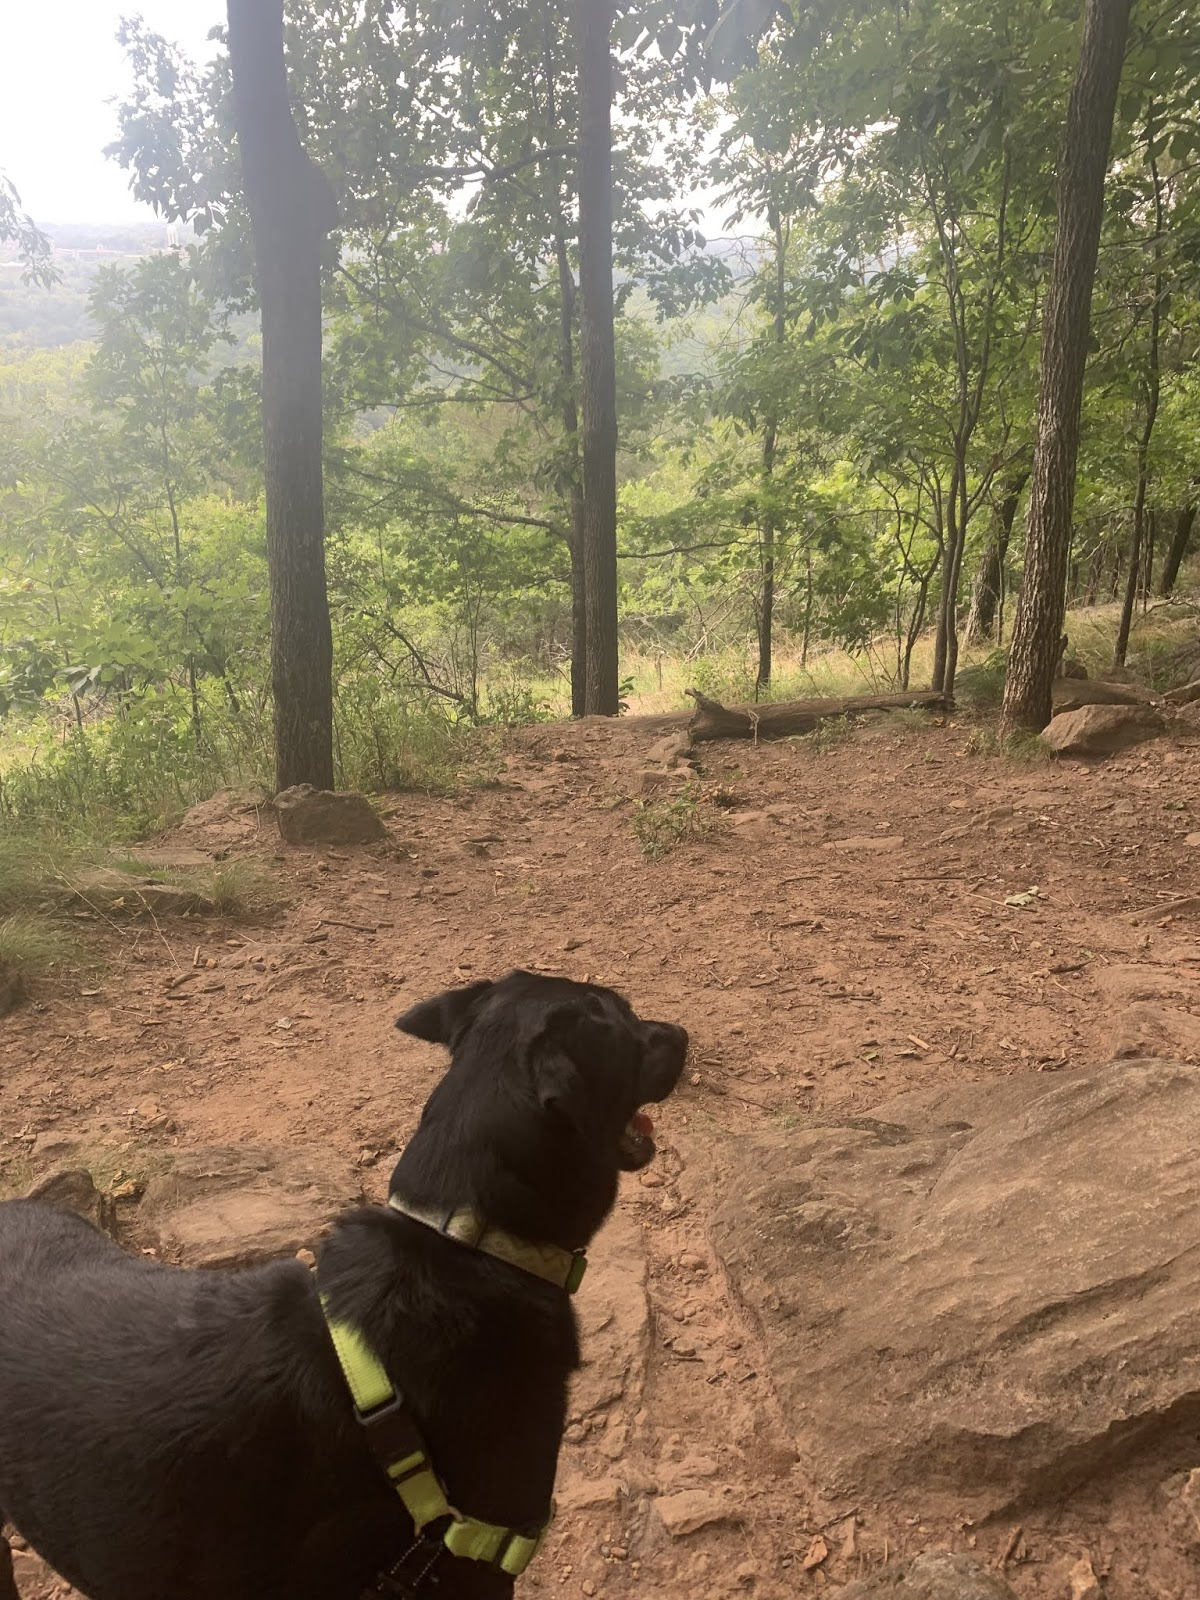 a black lab with a lime green harness is startled either by the sound of cannon fire or the fact that his human is not as agile going down the mountain as he is.